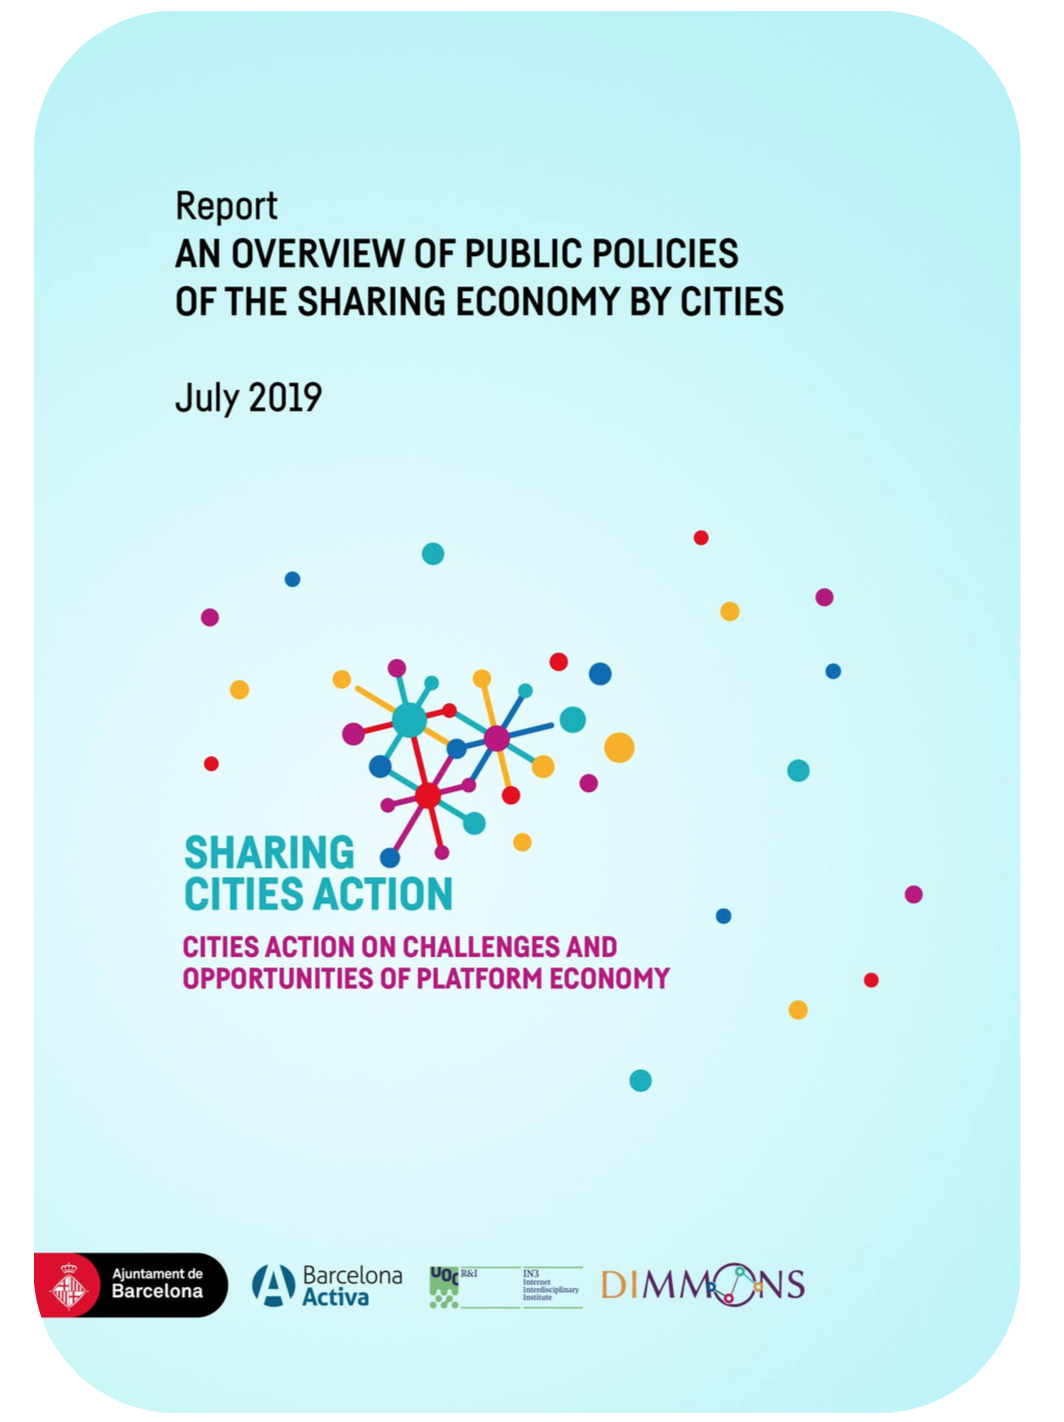 Captura de pantalla 2019 09 09 a las 13.15.01 Report: An Overview of Public Policies of the Sharing Economy by Cities